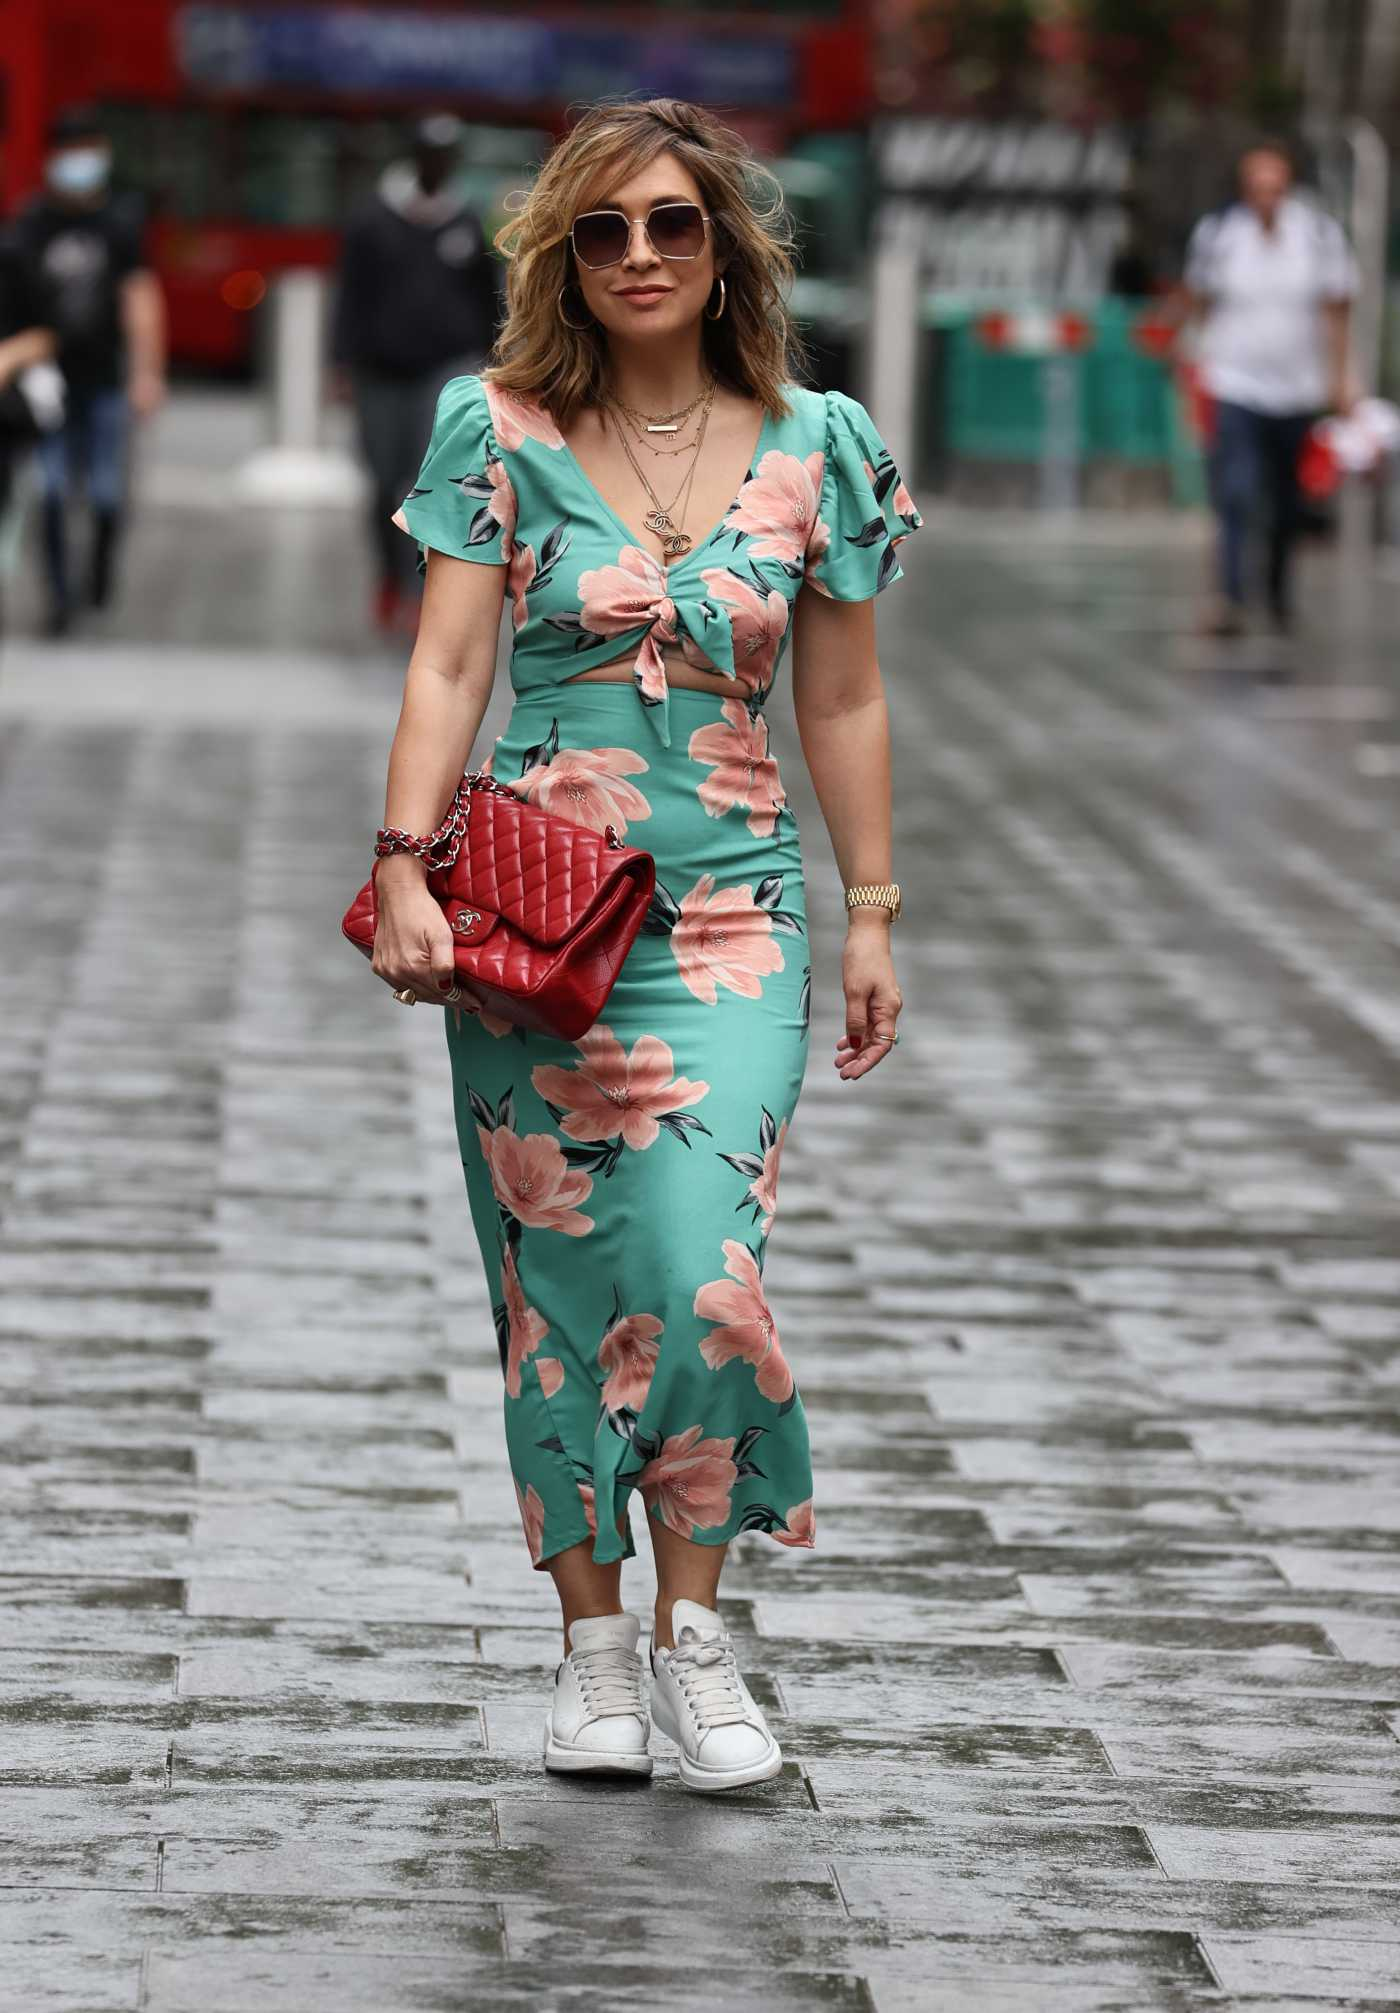 Myleene Klass in a Green Floral Dress Arrives at the Smooth Radio in London 08/06/2020